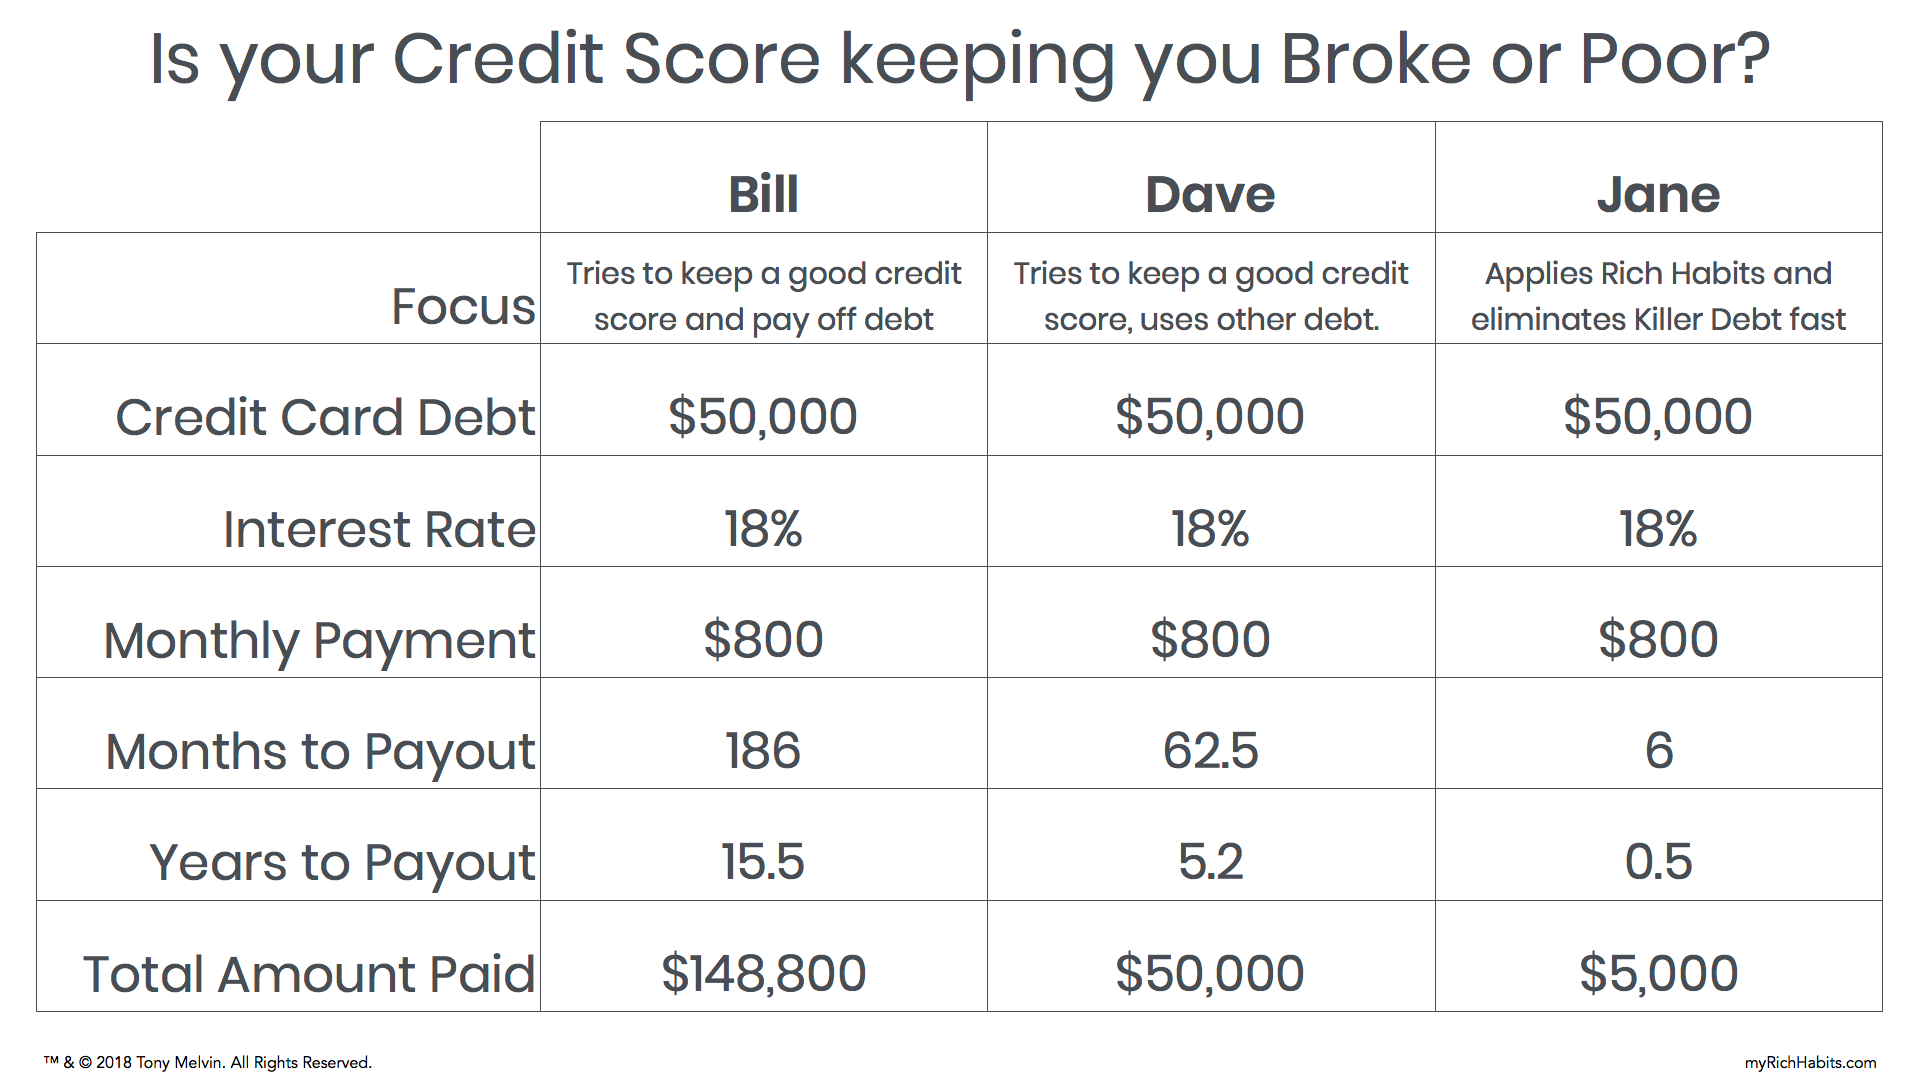 Is your Credit Score keeping you Broke or Poor - Image.png